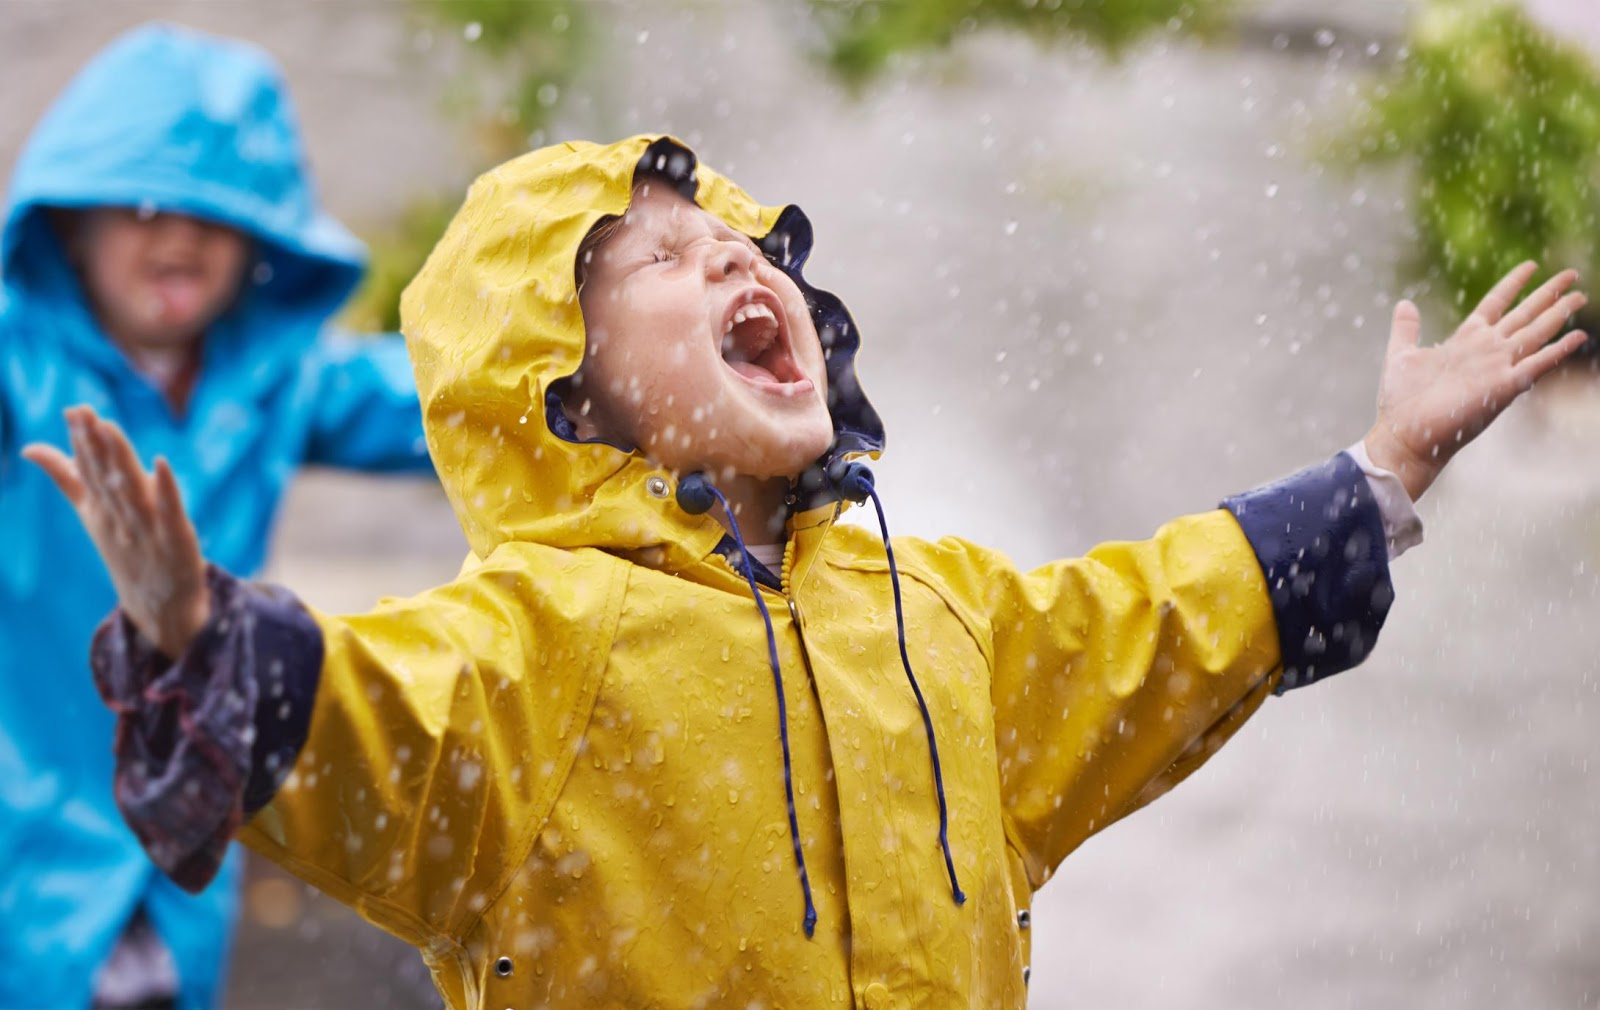 A child in a yellow raincoat standing in the rain with his arms up.